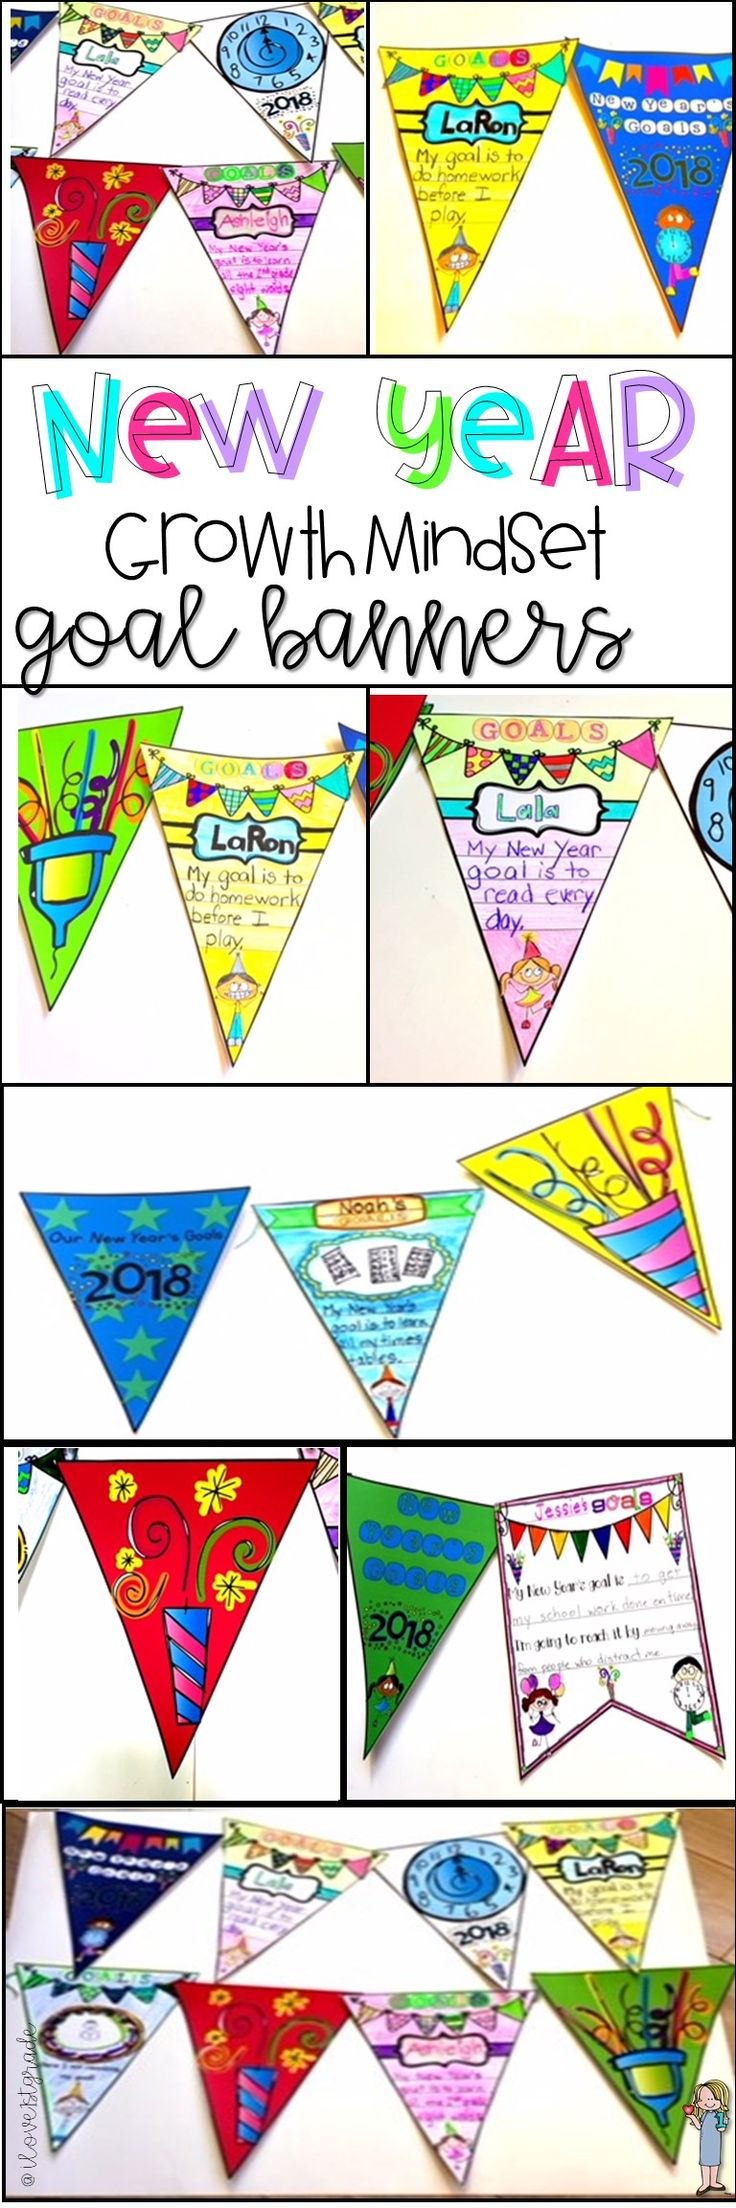 New Years 2018  Looking for an engaging way to begin the New Year? If so, try these banners, perfect for a growth mindset! These banners are designed as a way to foster a Growth Mindset culture in your classroom. Students write or draw their goals for the New Year and decorate the banners. String them up along with the 7 decorative banners and hang them in your classroom. They serve as a great reminder for students goals!